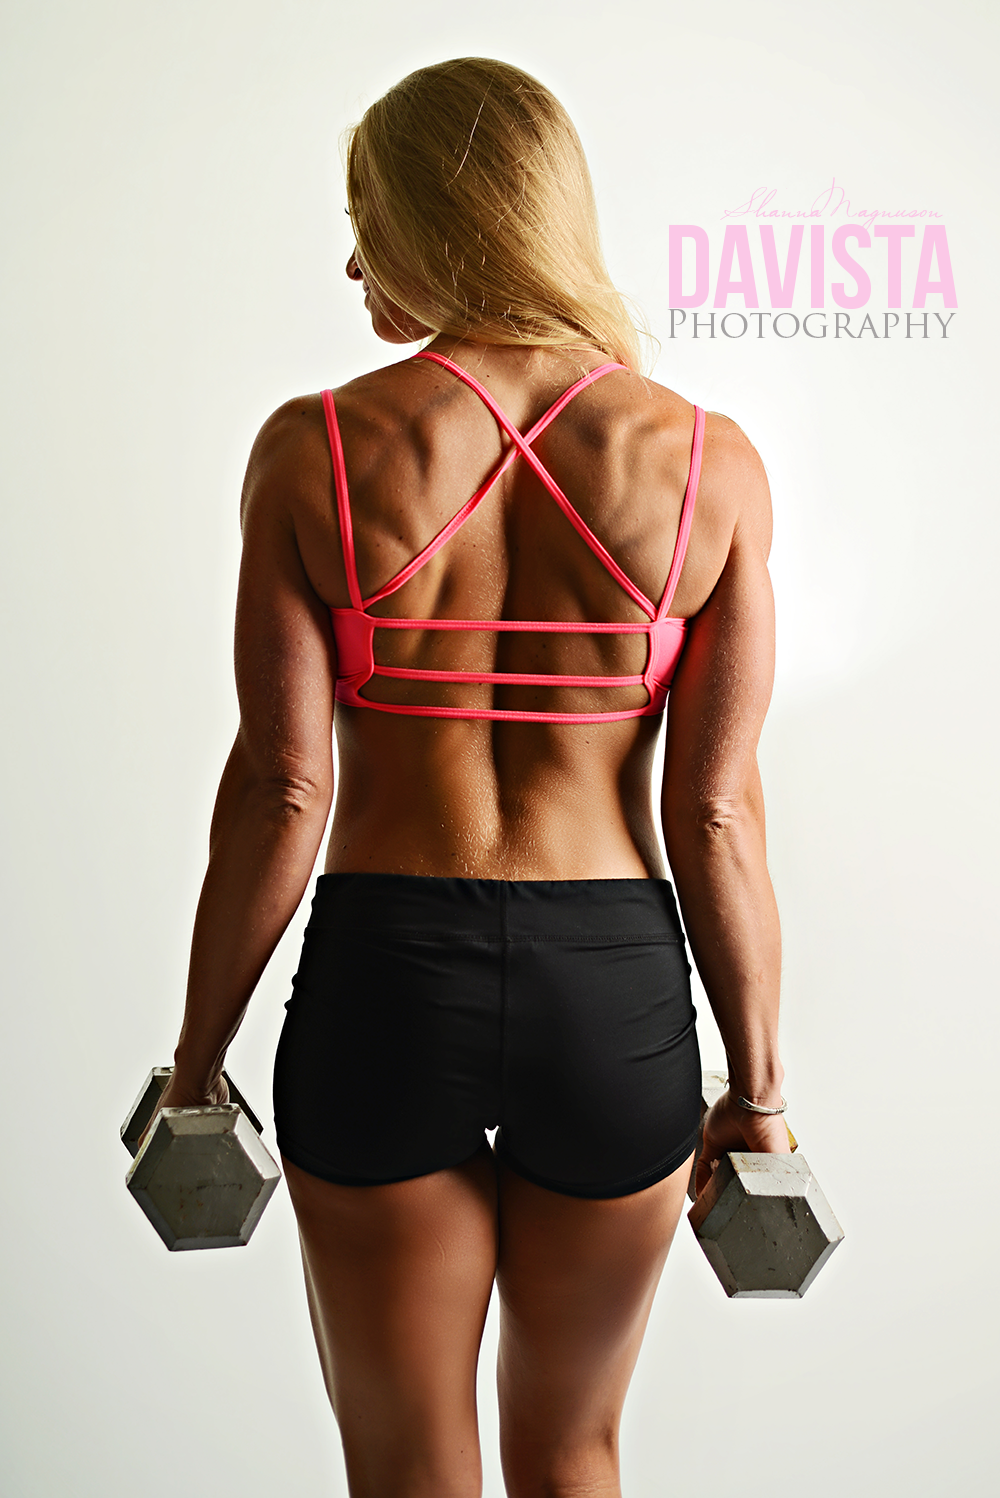 back muscles and poses magazine photographer